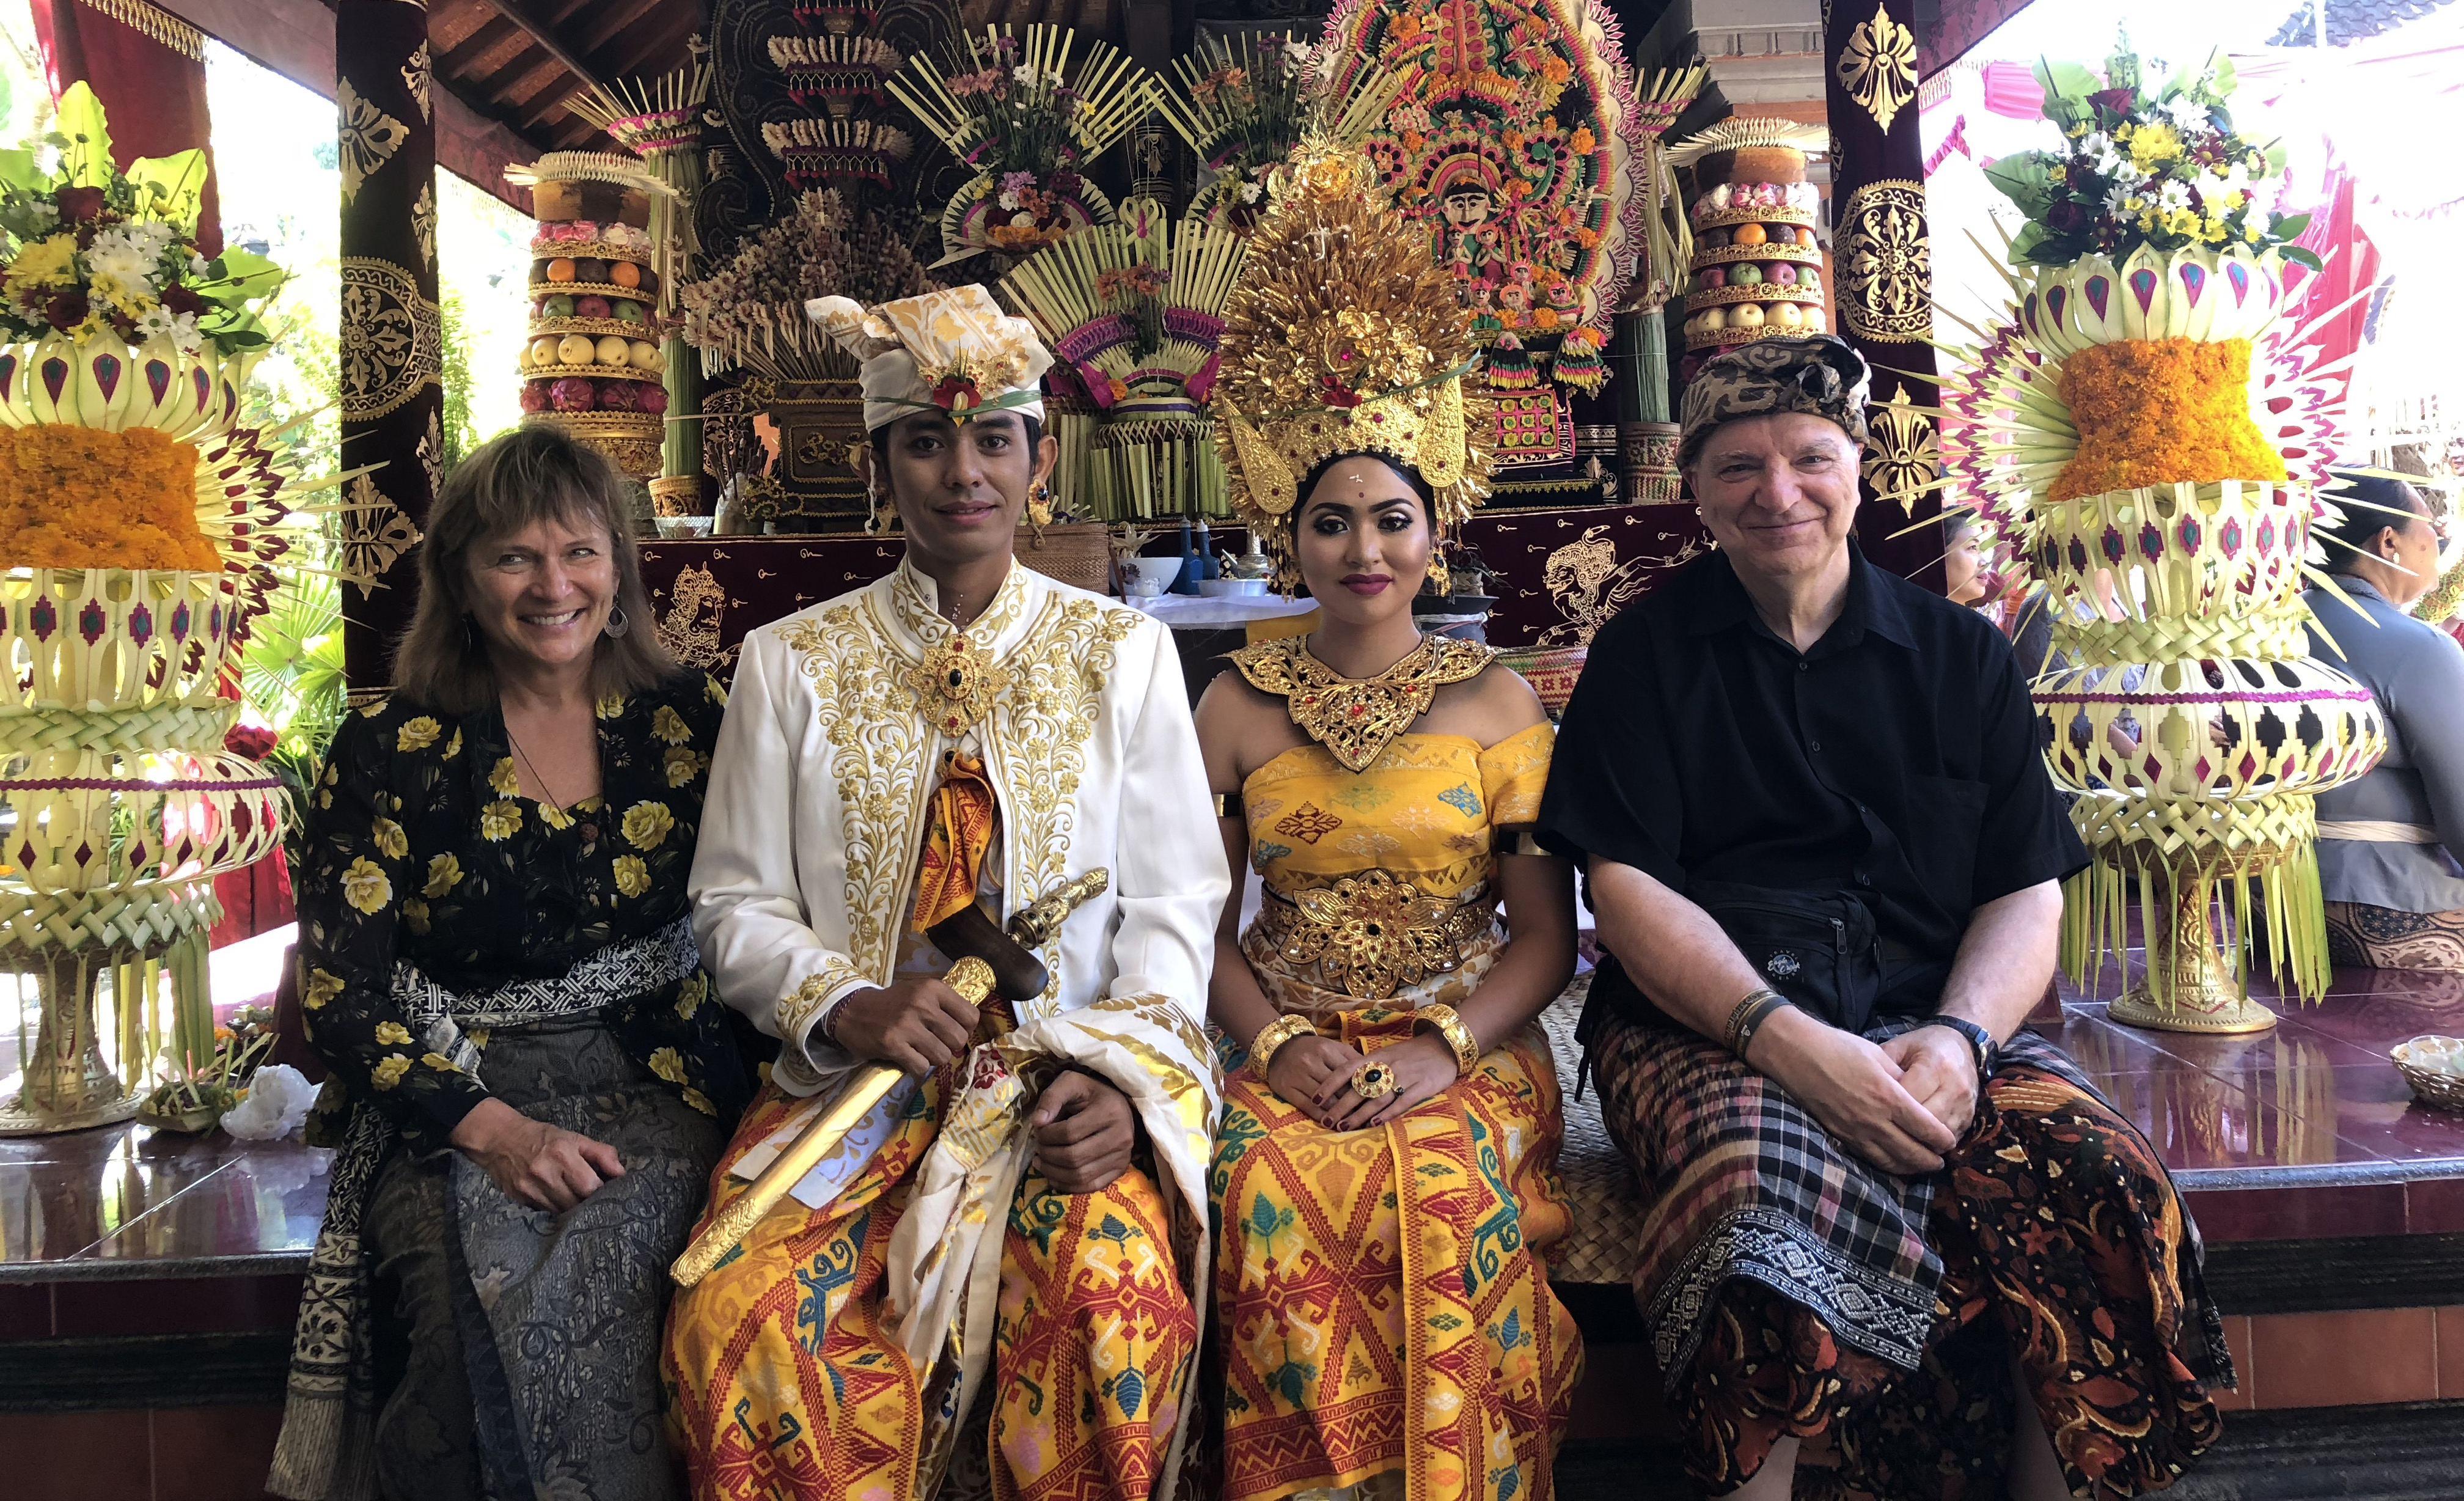 Frances and Bob at a Balinese Wedding*